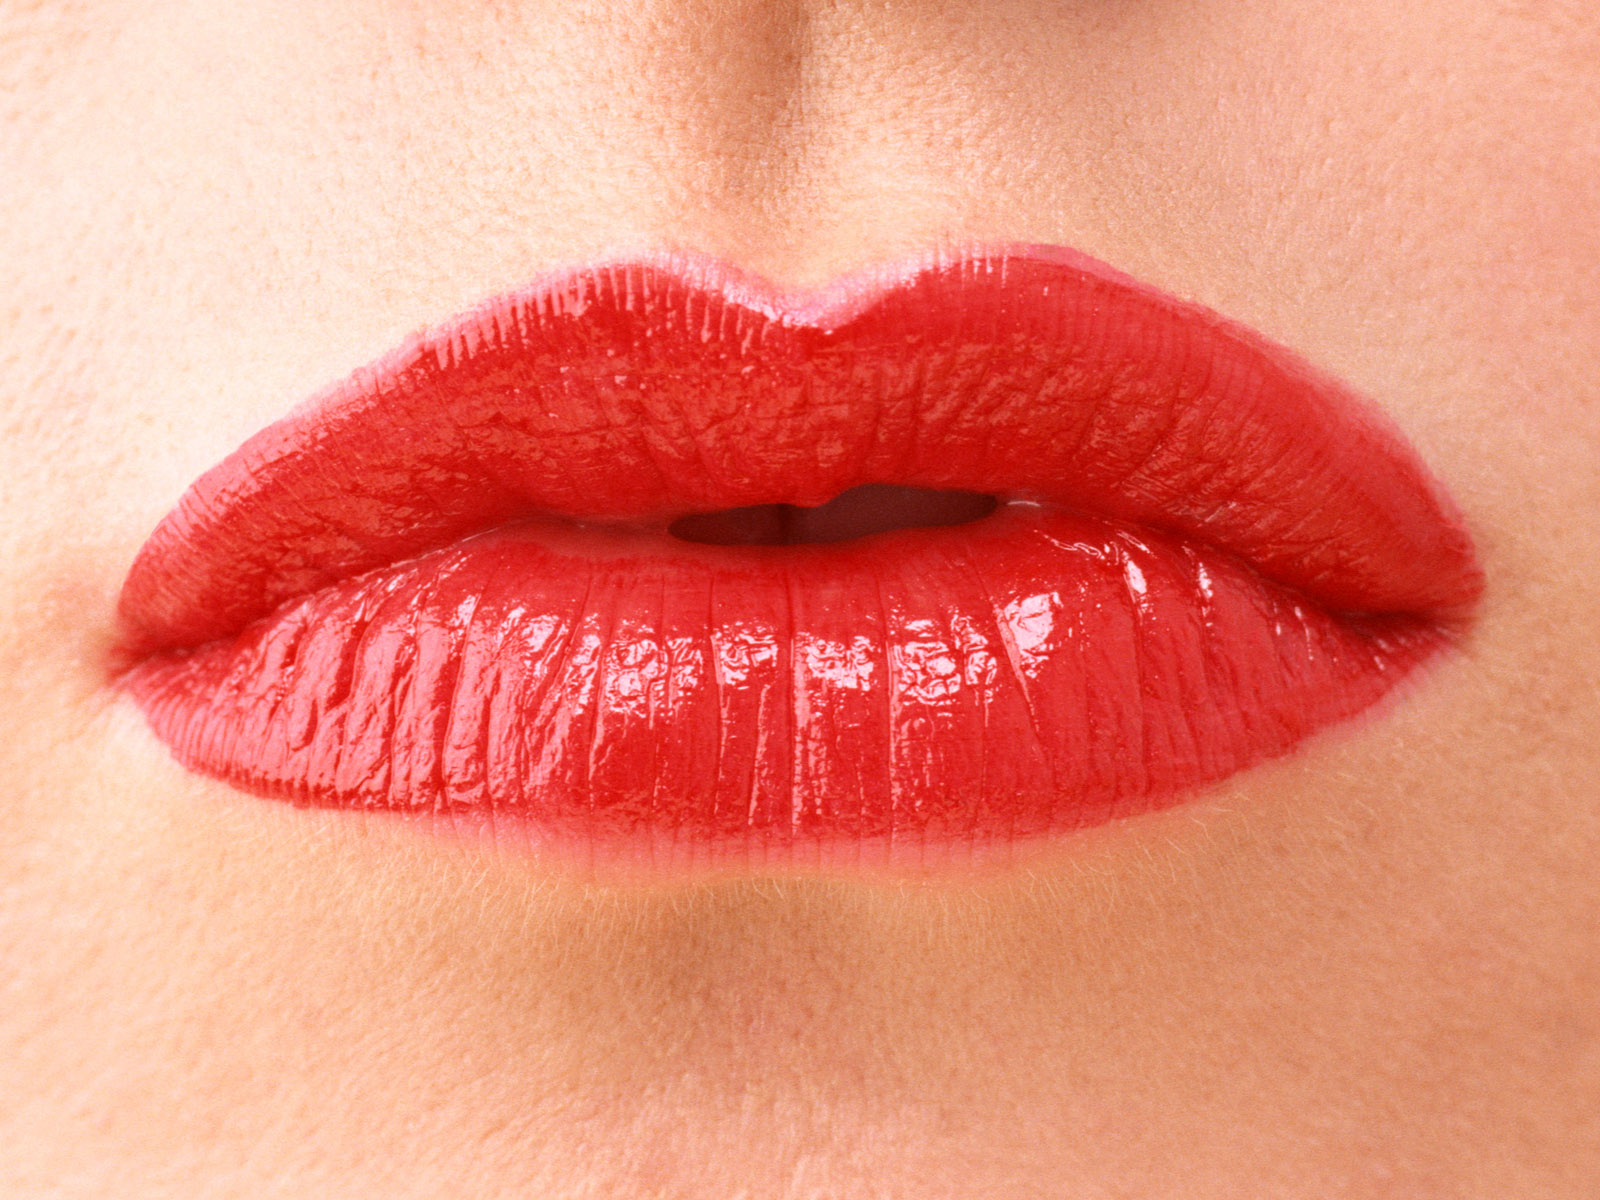 Female lips album 269